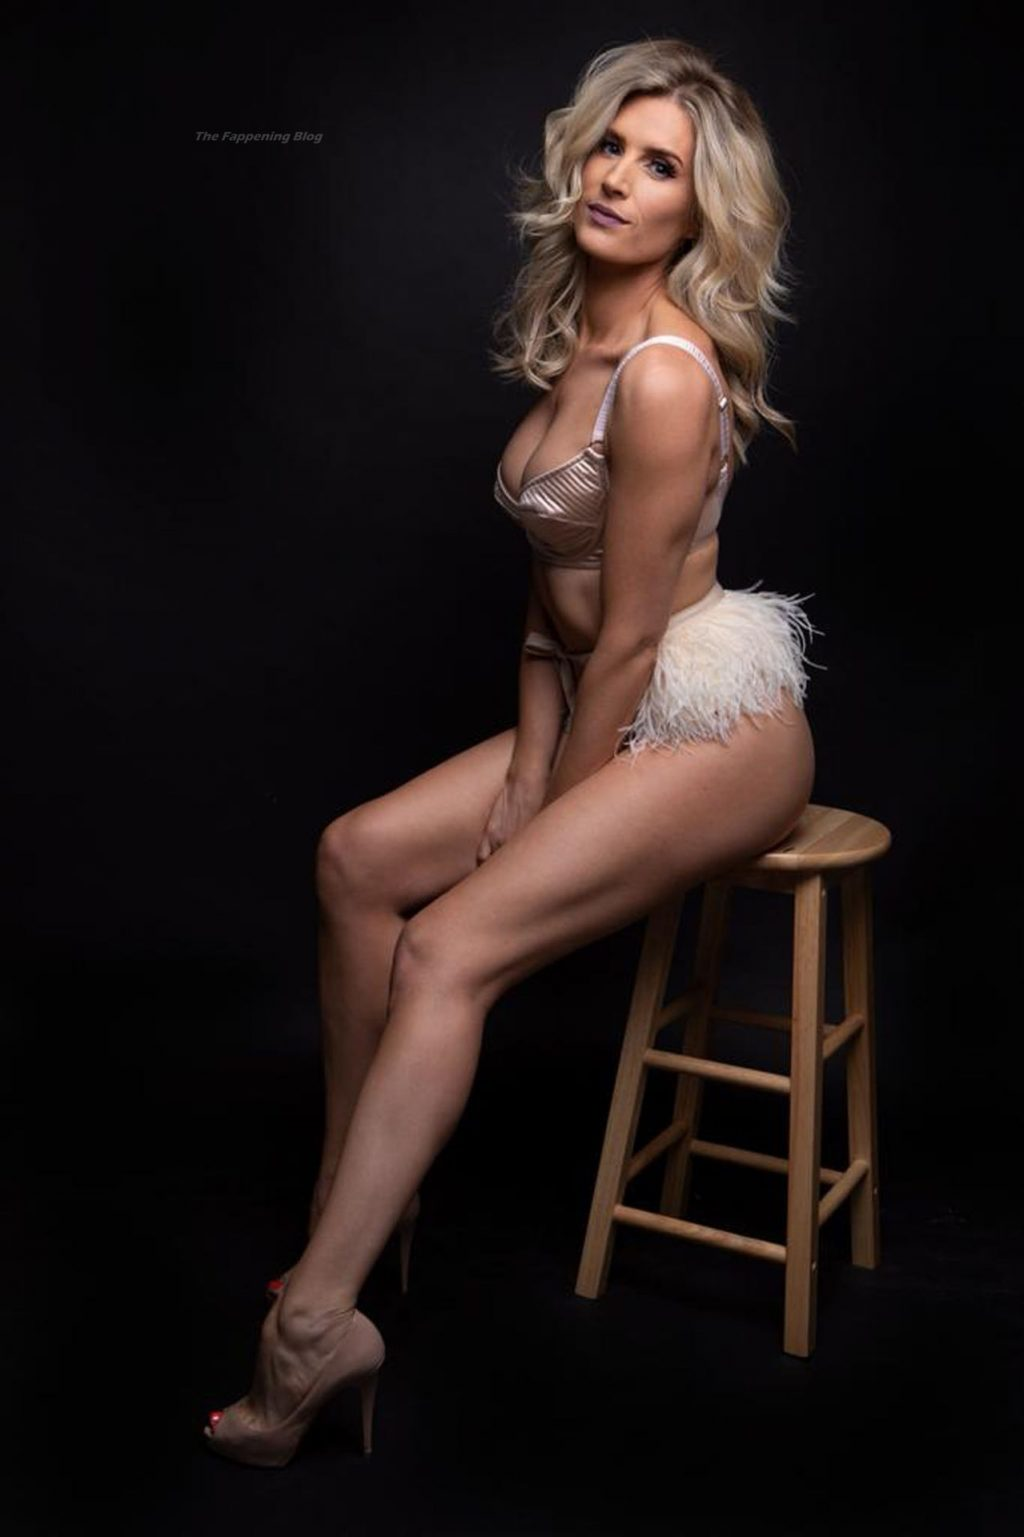 Sarah Jayne Dunn Showcases Her Alluring Sultry Figure (16 Photos)